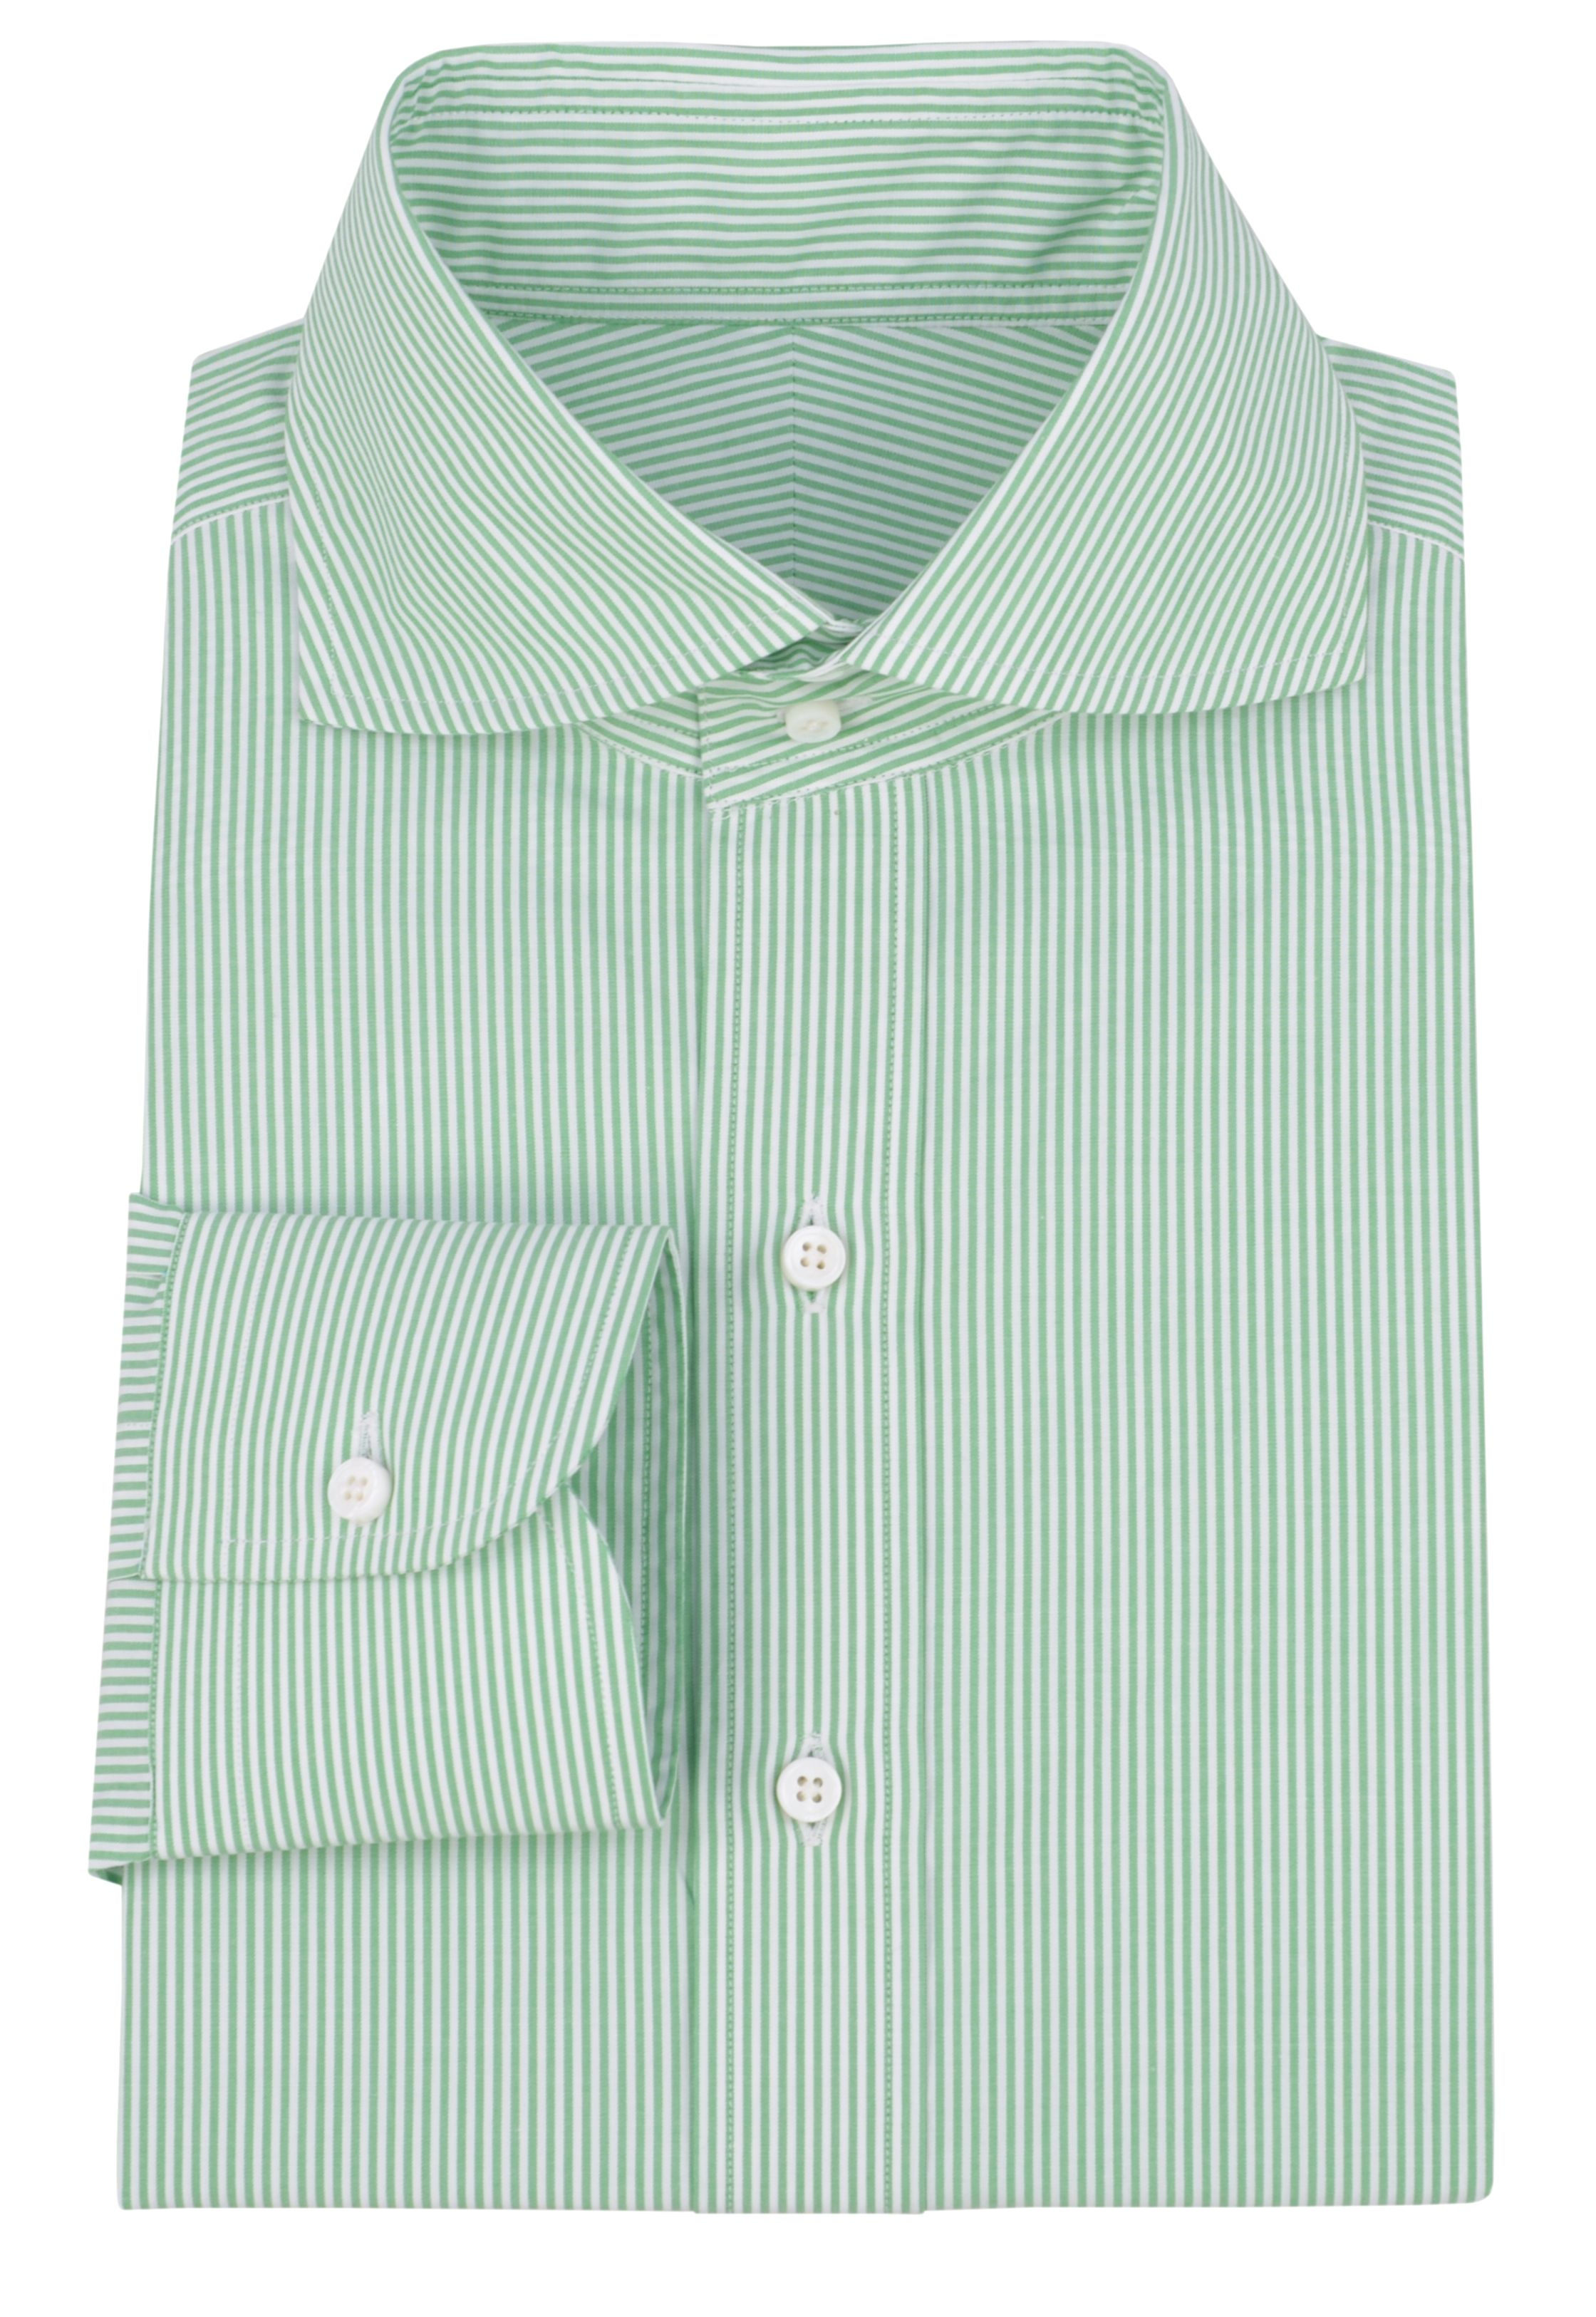 12552059c0a Luxire White Green Dress Stripes shirt with NOBD I ( curved   spread)  collar.